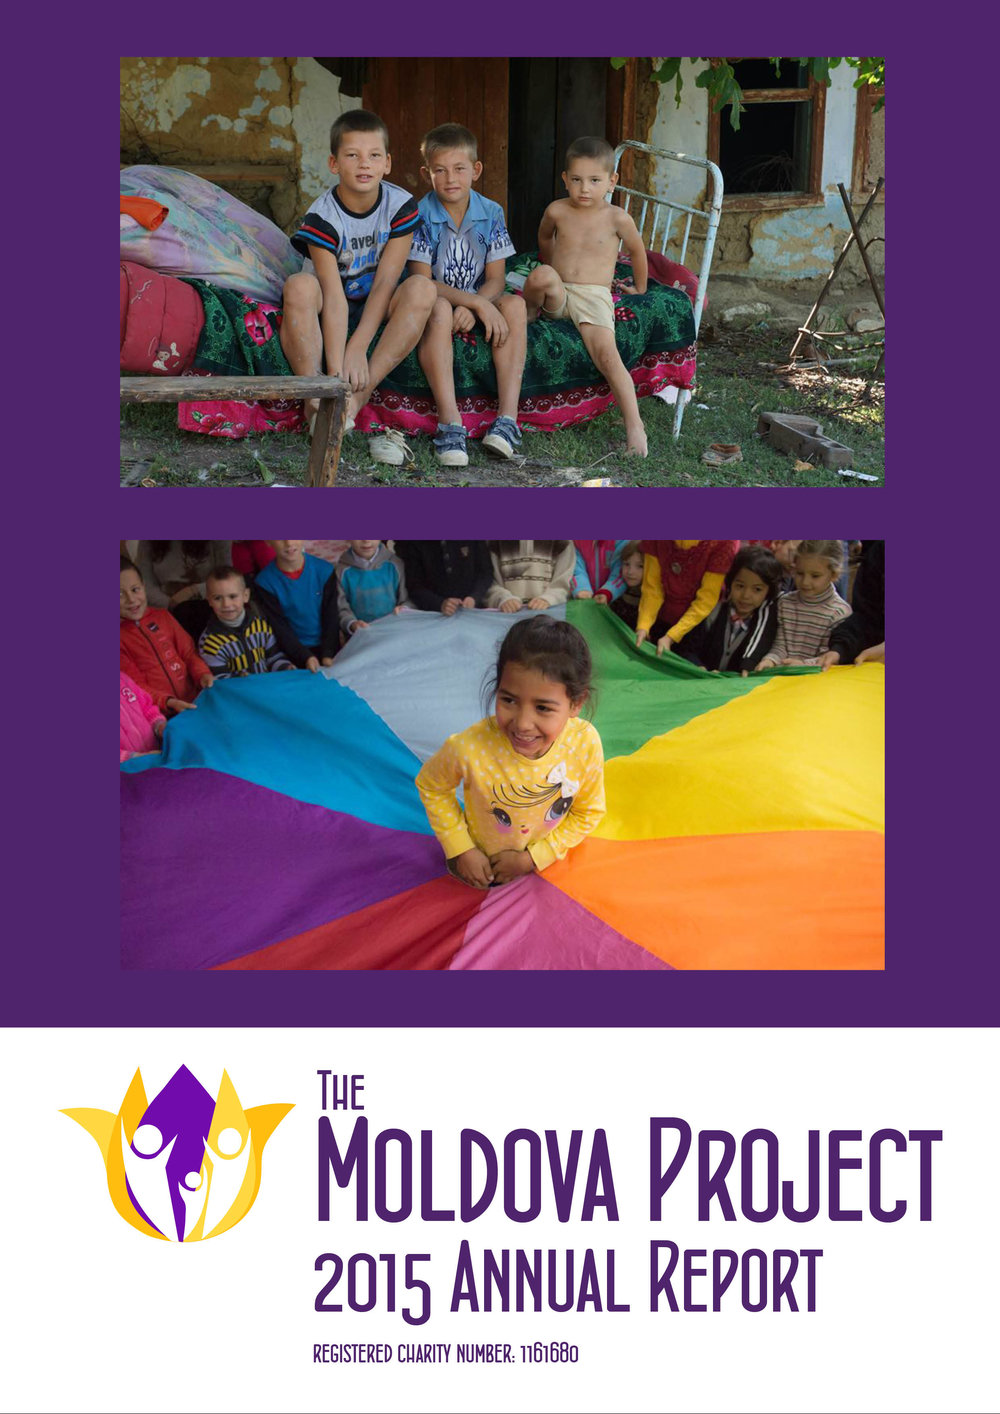 9. Moldova Project, The, Annual Report 2015 clean.jpg